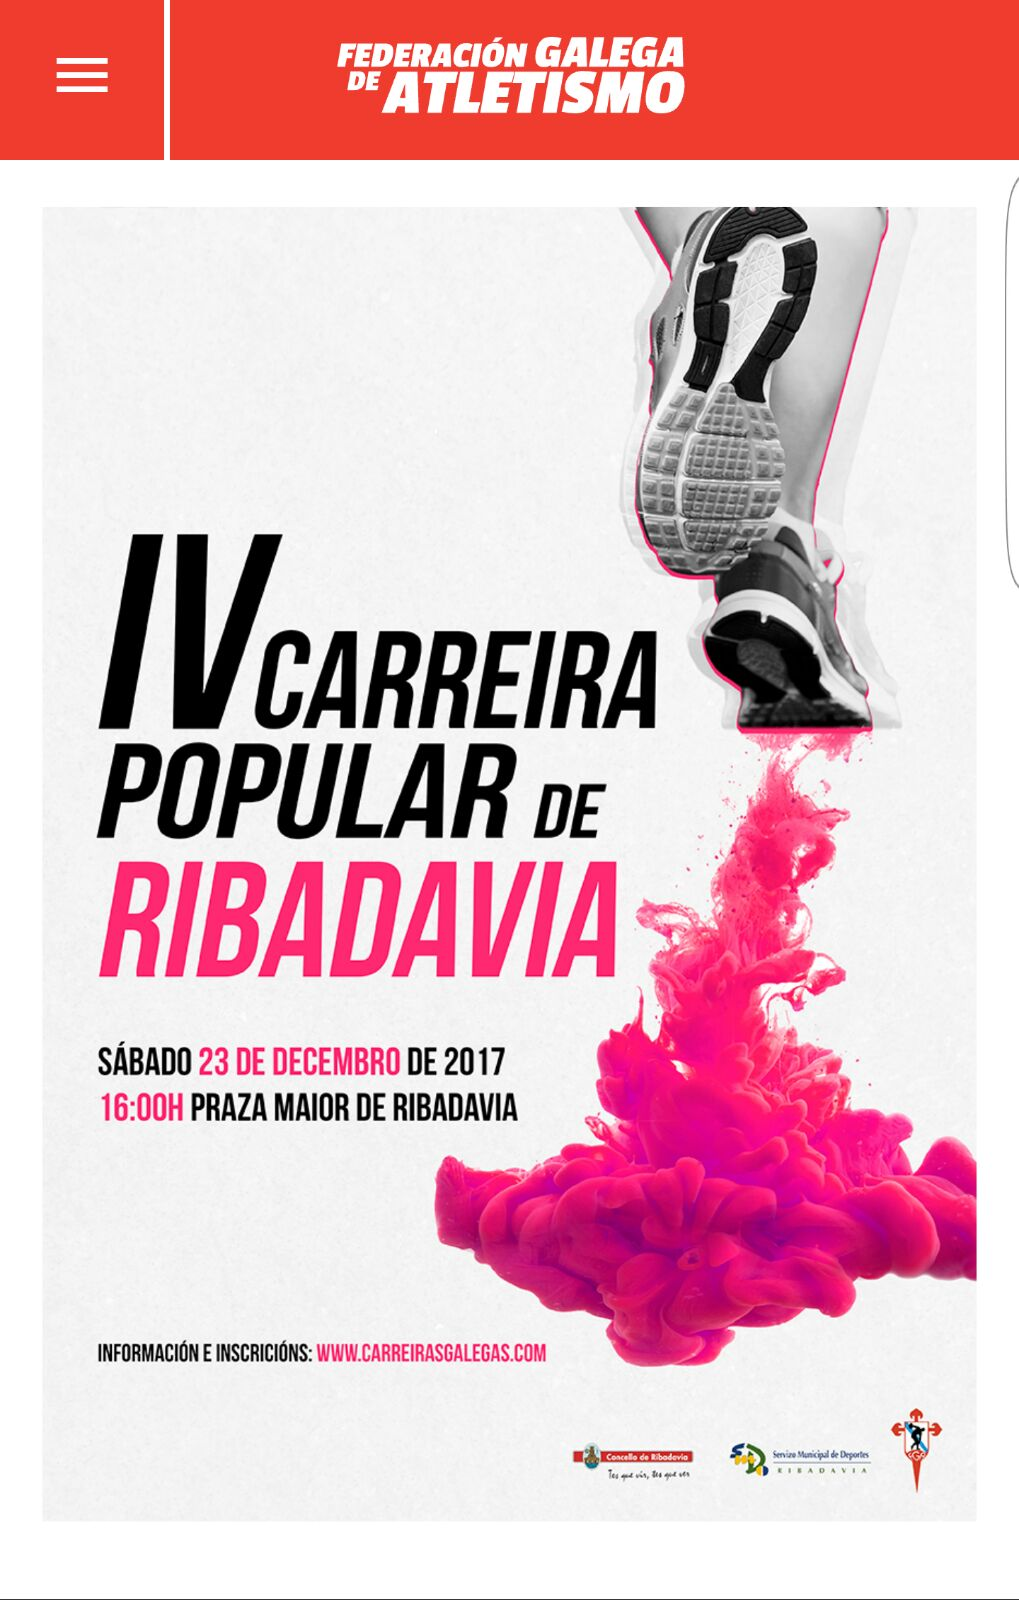 Carrera Popular Ribadavia